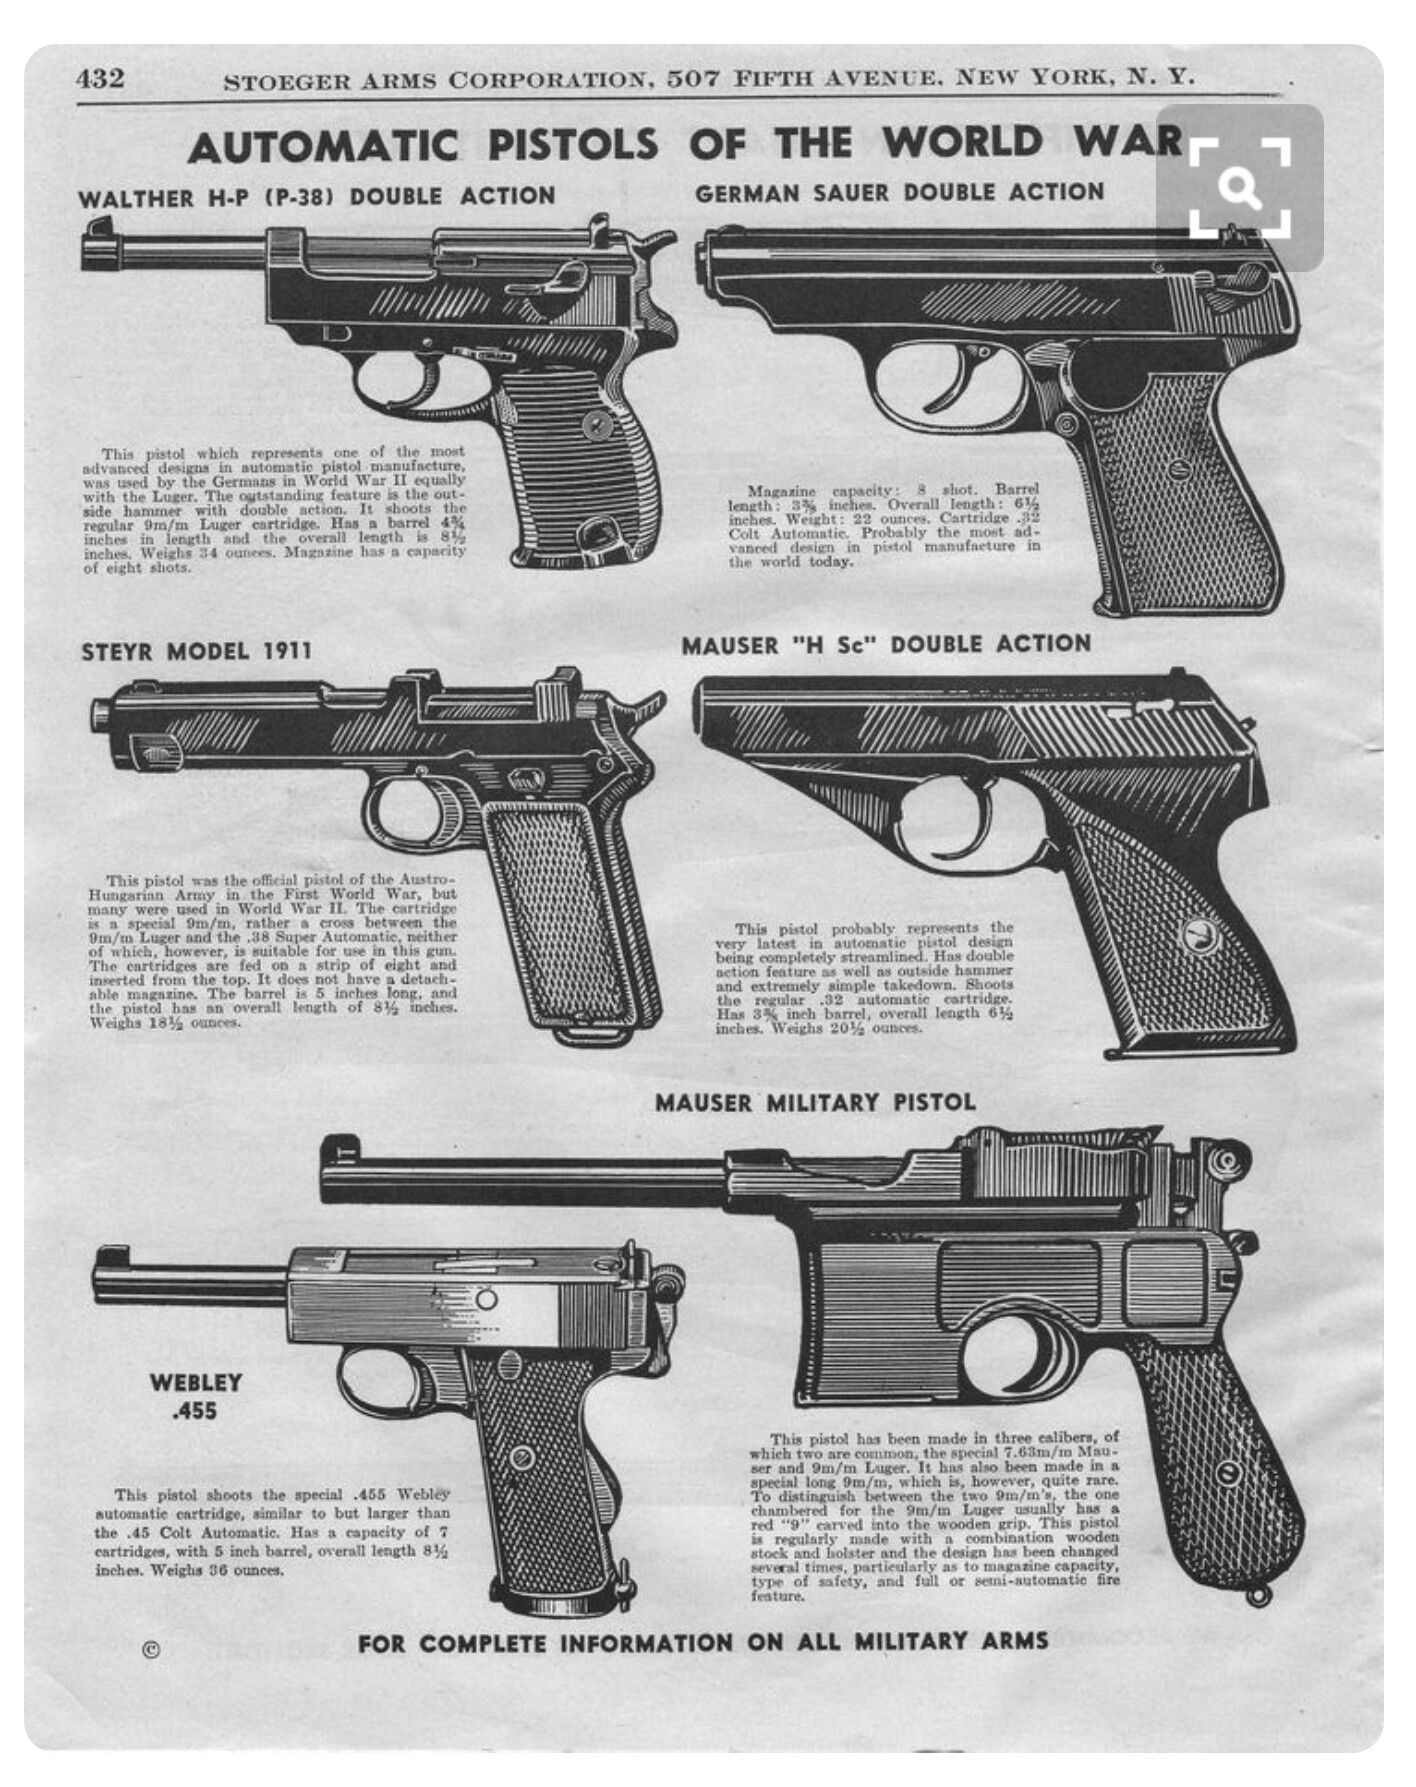 Pin by Daniel Patterson on projects | Ww2 weapons, Hand guns, Guns